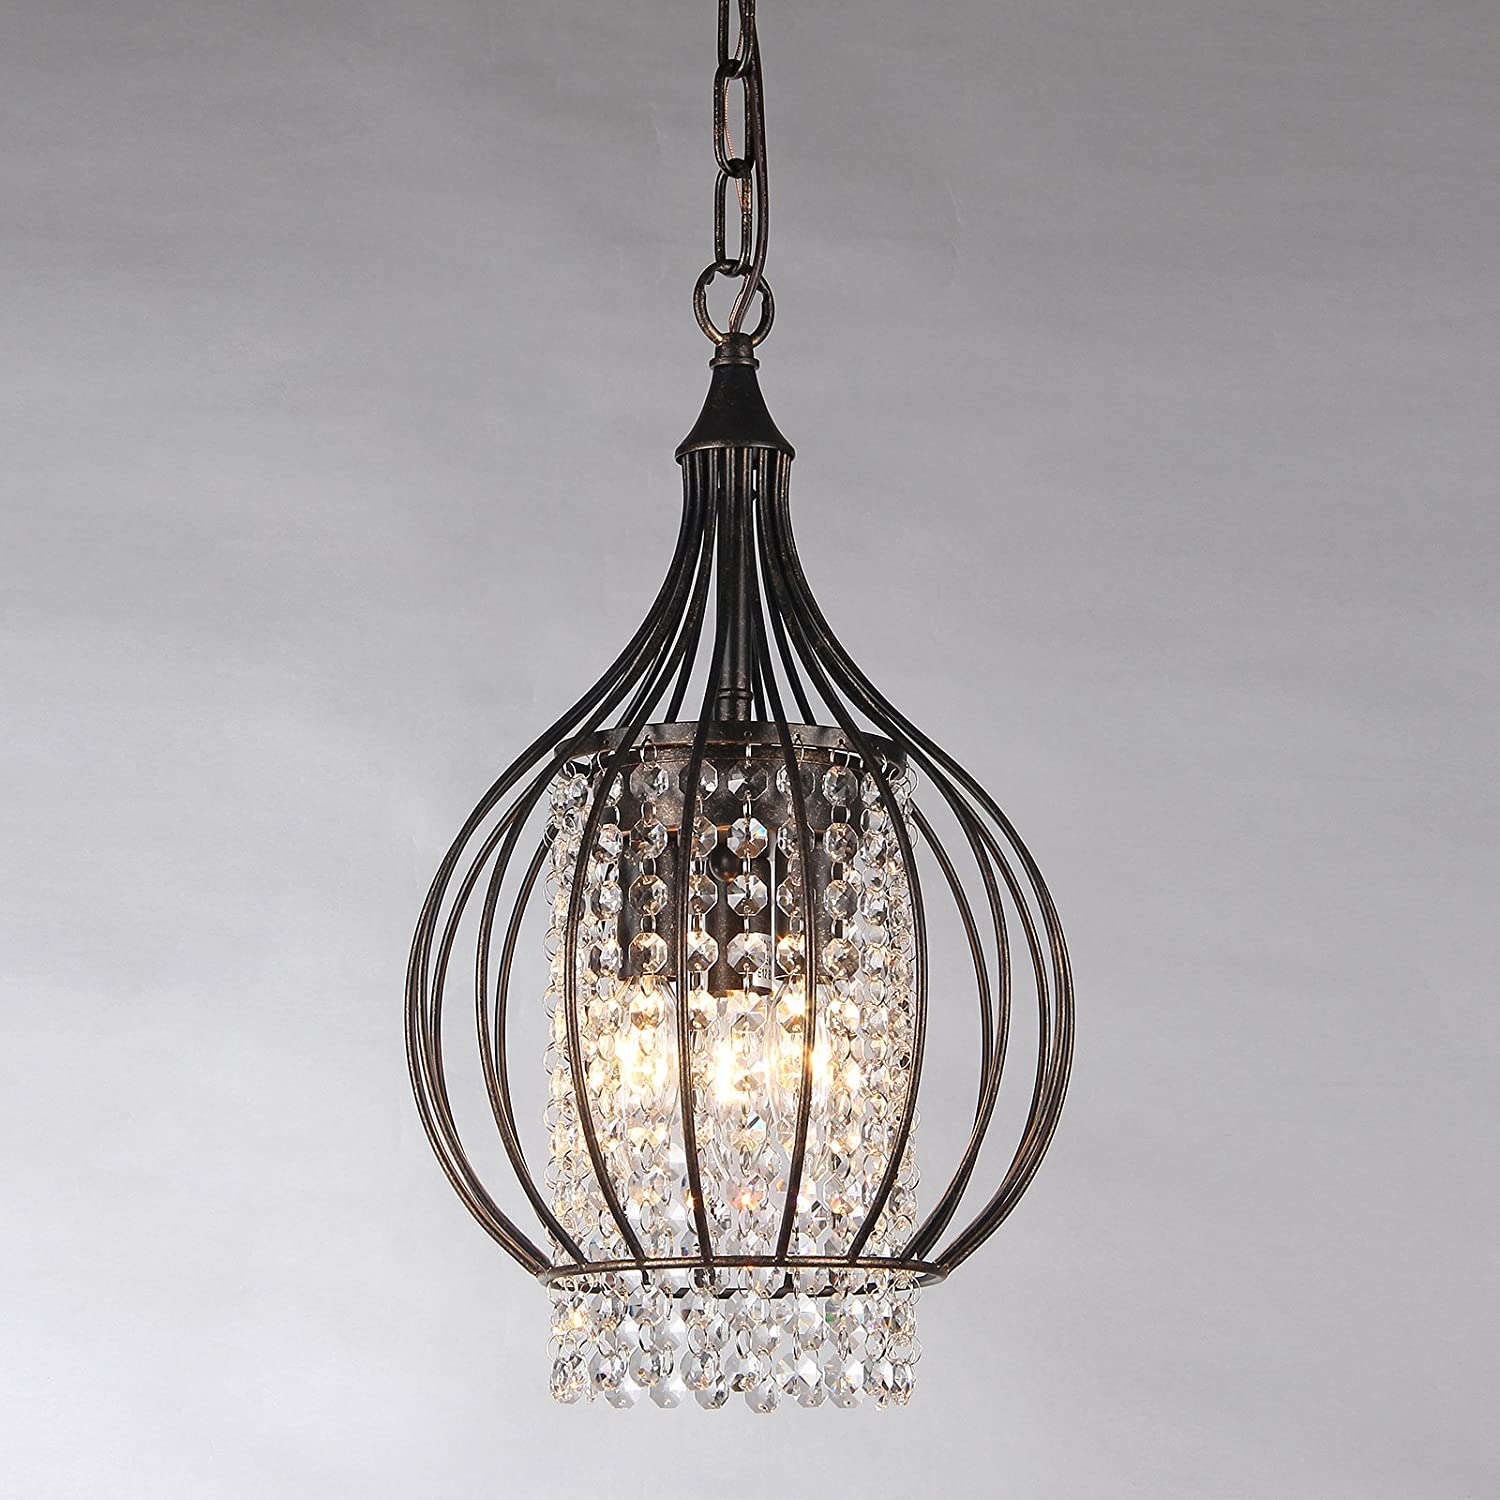 mini light ceiling shades lighting finish lamp pendant products antique bronze crystal birdcage starthi chandelier wrought iron lantern with